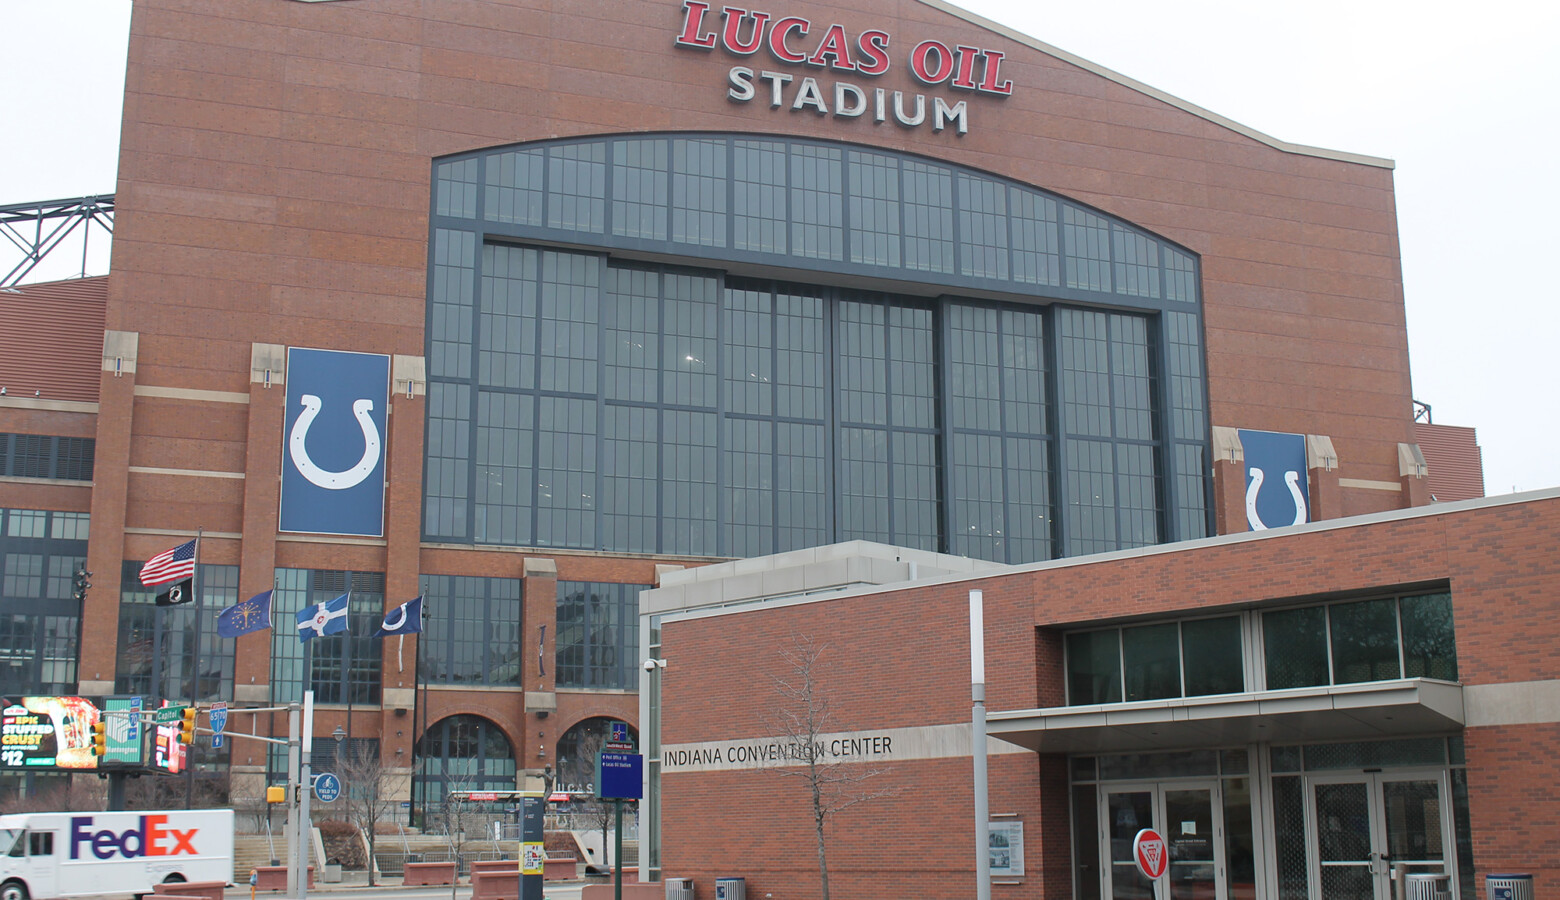 Lucas Oil Stadium is one of six sites the NCAA is using to host the 2021 Men's Division I Basketball Championship. The venue could have up to 17,500 people at a game based on the capacity limits. (Lauren Chapman/IPB News)